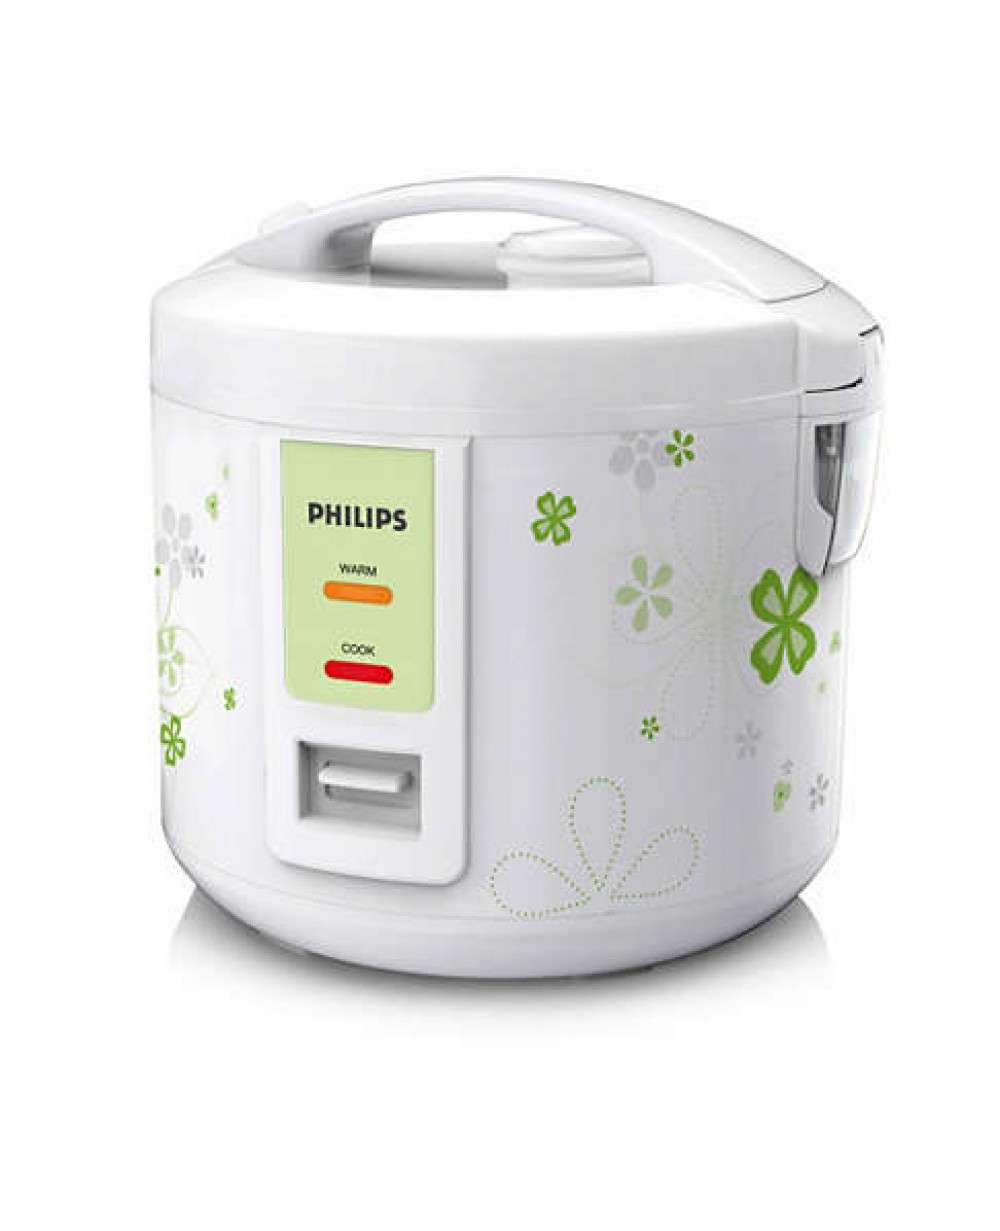 HD3017 – PHILIPS RICE COOKER 1.8L DELUXE HD3017